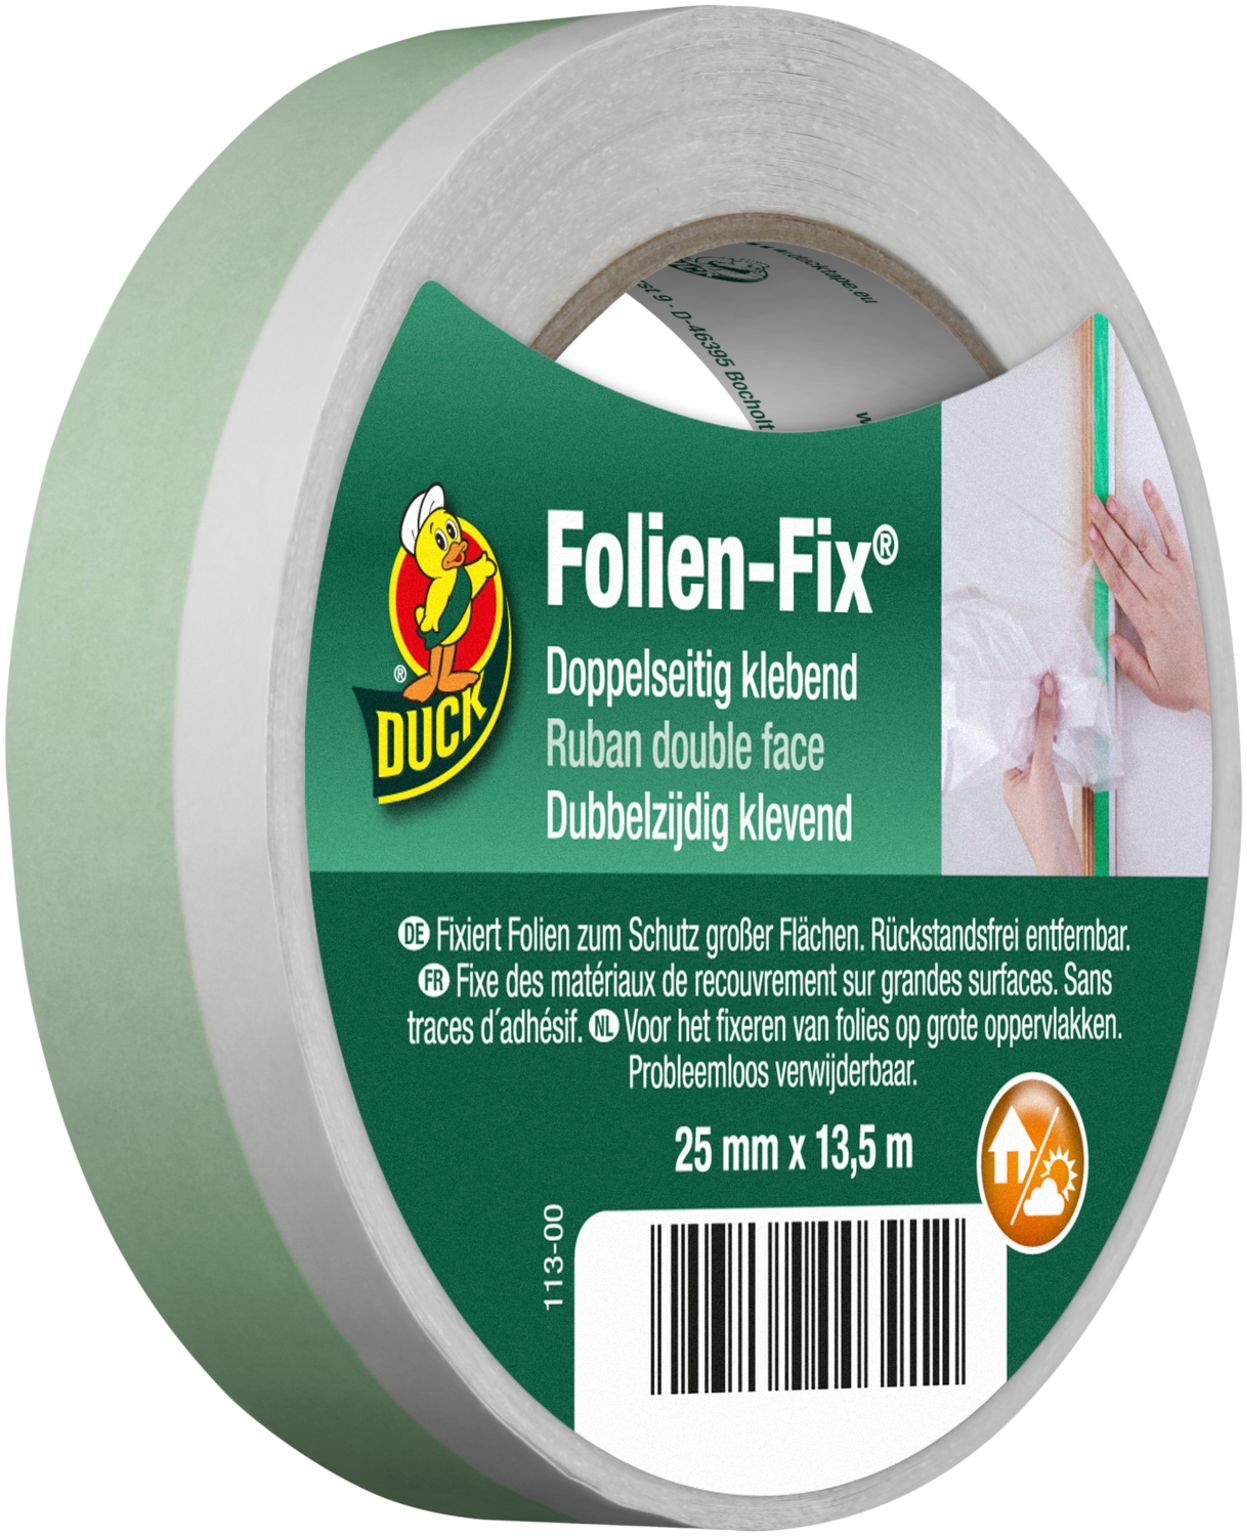 Image of DUCK Doppelseitiges Klebeband FOLIEN FIX